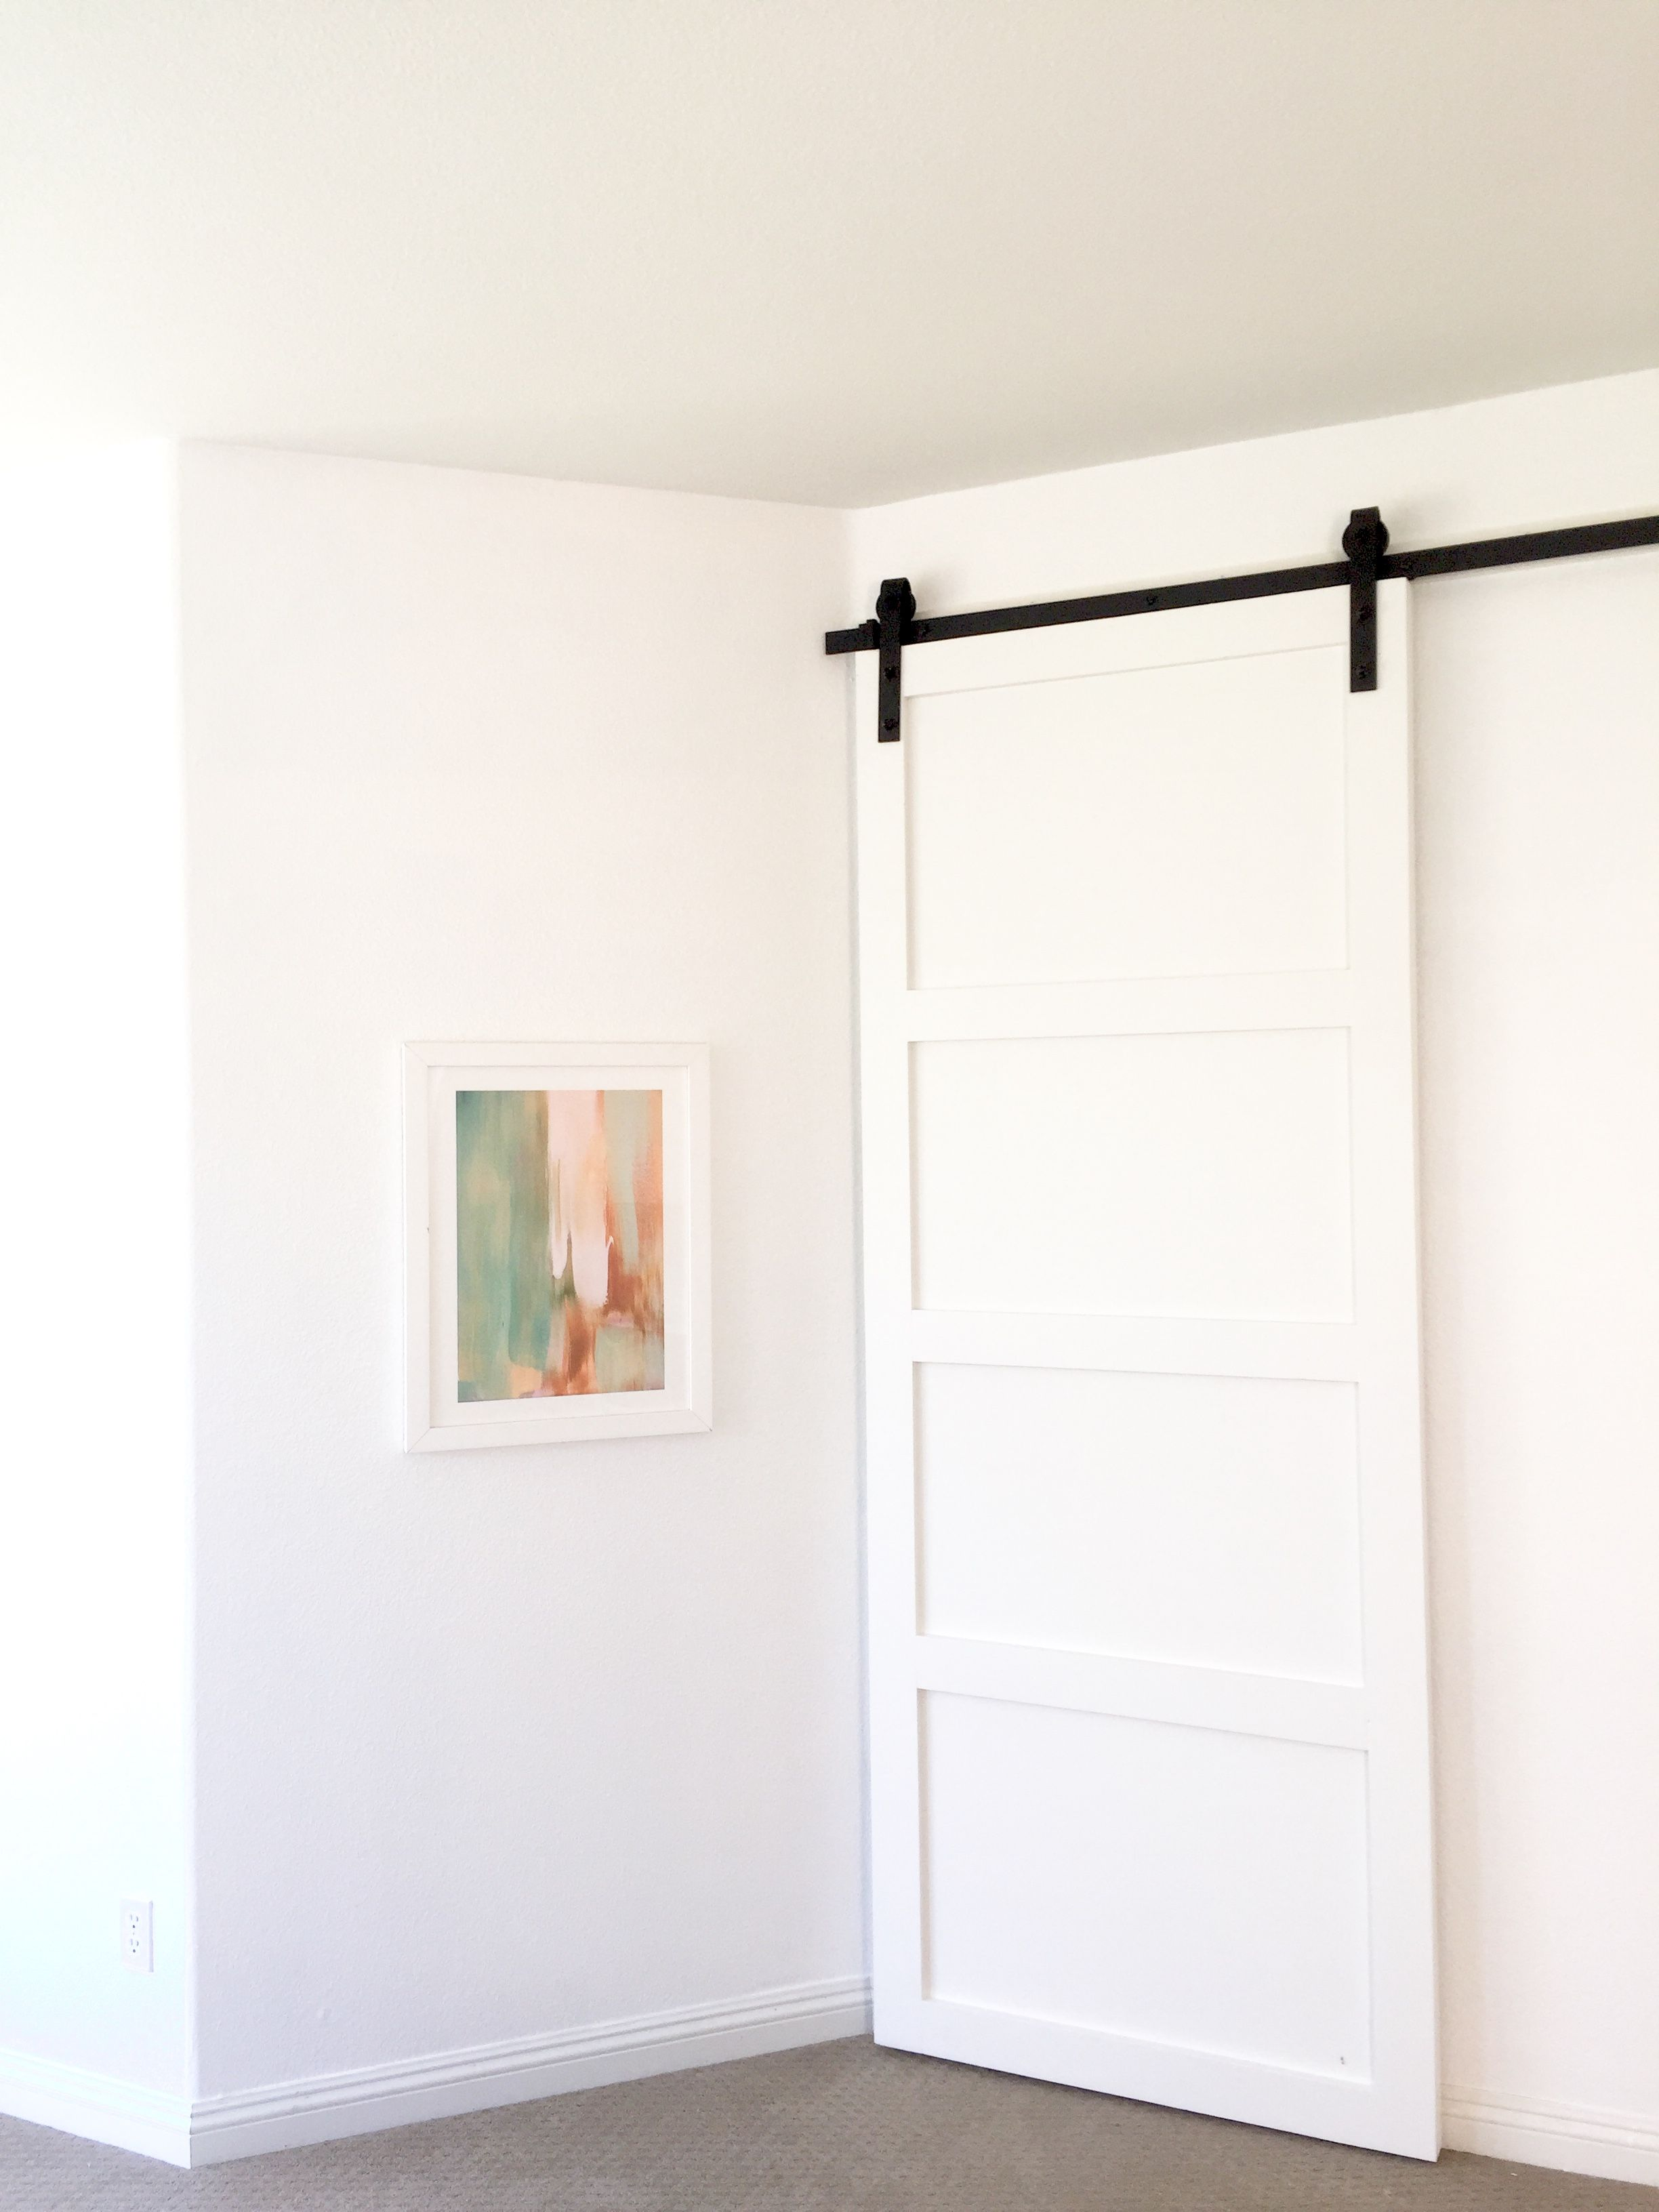 Diy Barn Door Modern Shaker Style White Moderne Barn Door Room Door Design Interior Barn Doors Modern Barn Door